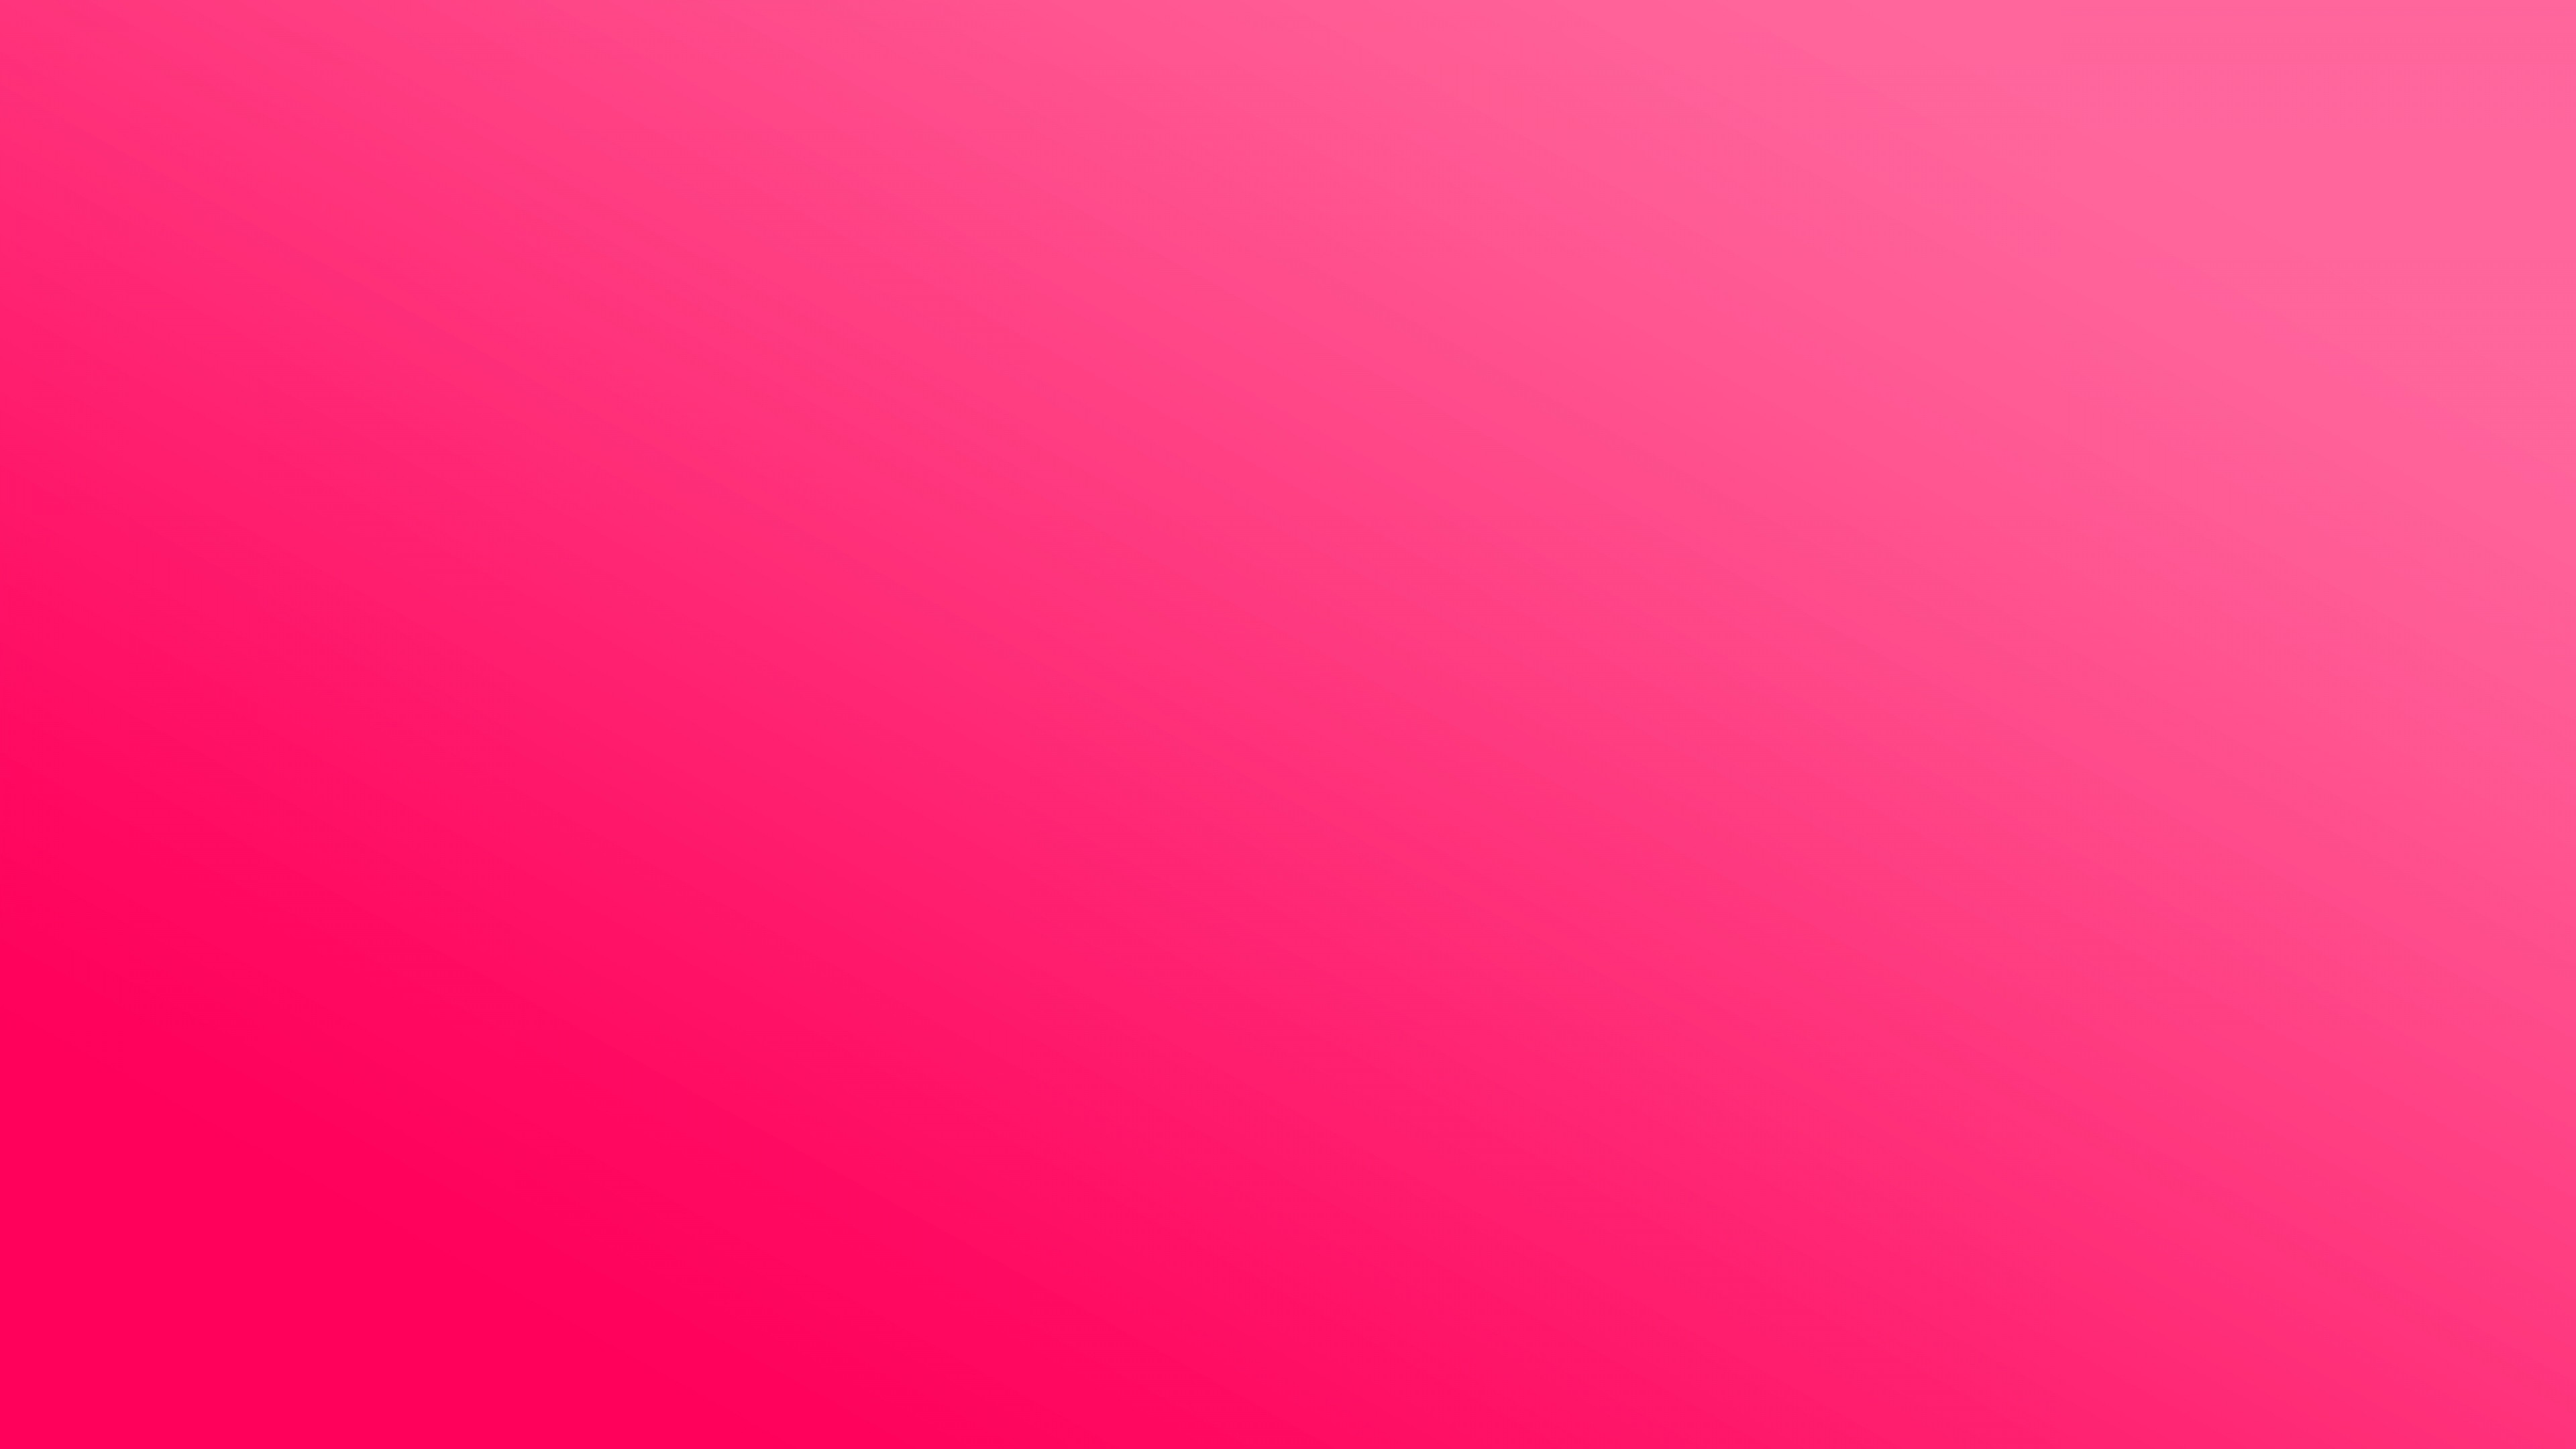 3840x2160  Wallpaper pink, solid, color, light, bright